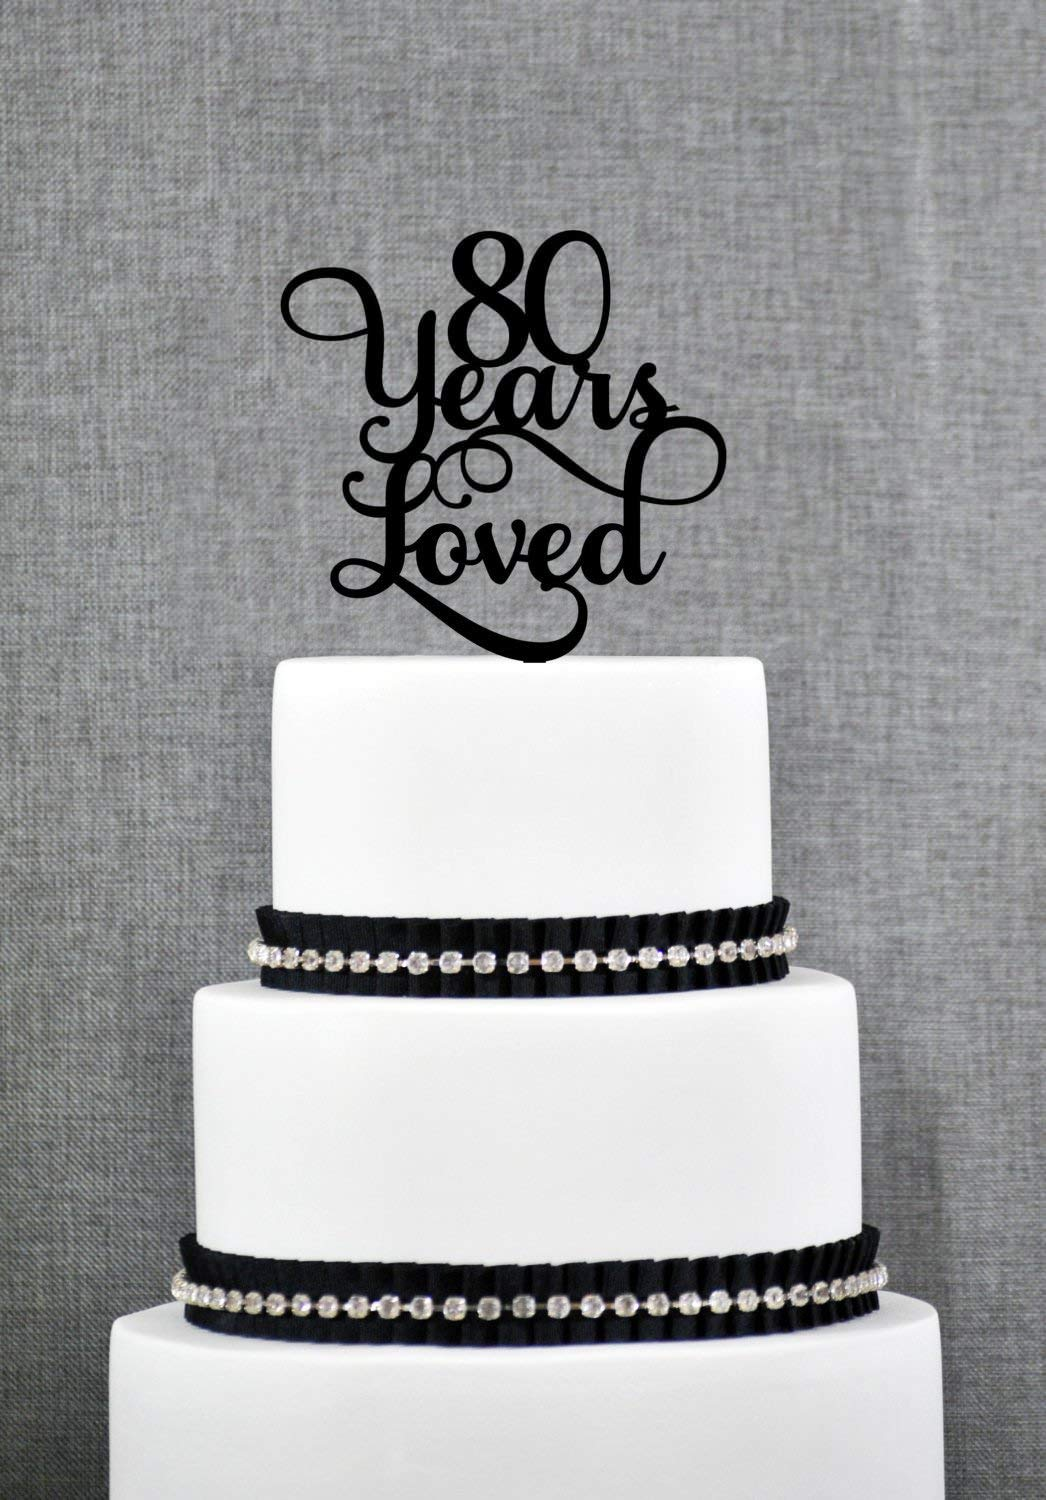 Get Quotations 80 Years Loved Birthday Cake Topper Elegant 80th Anniversary Gift